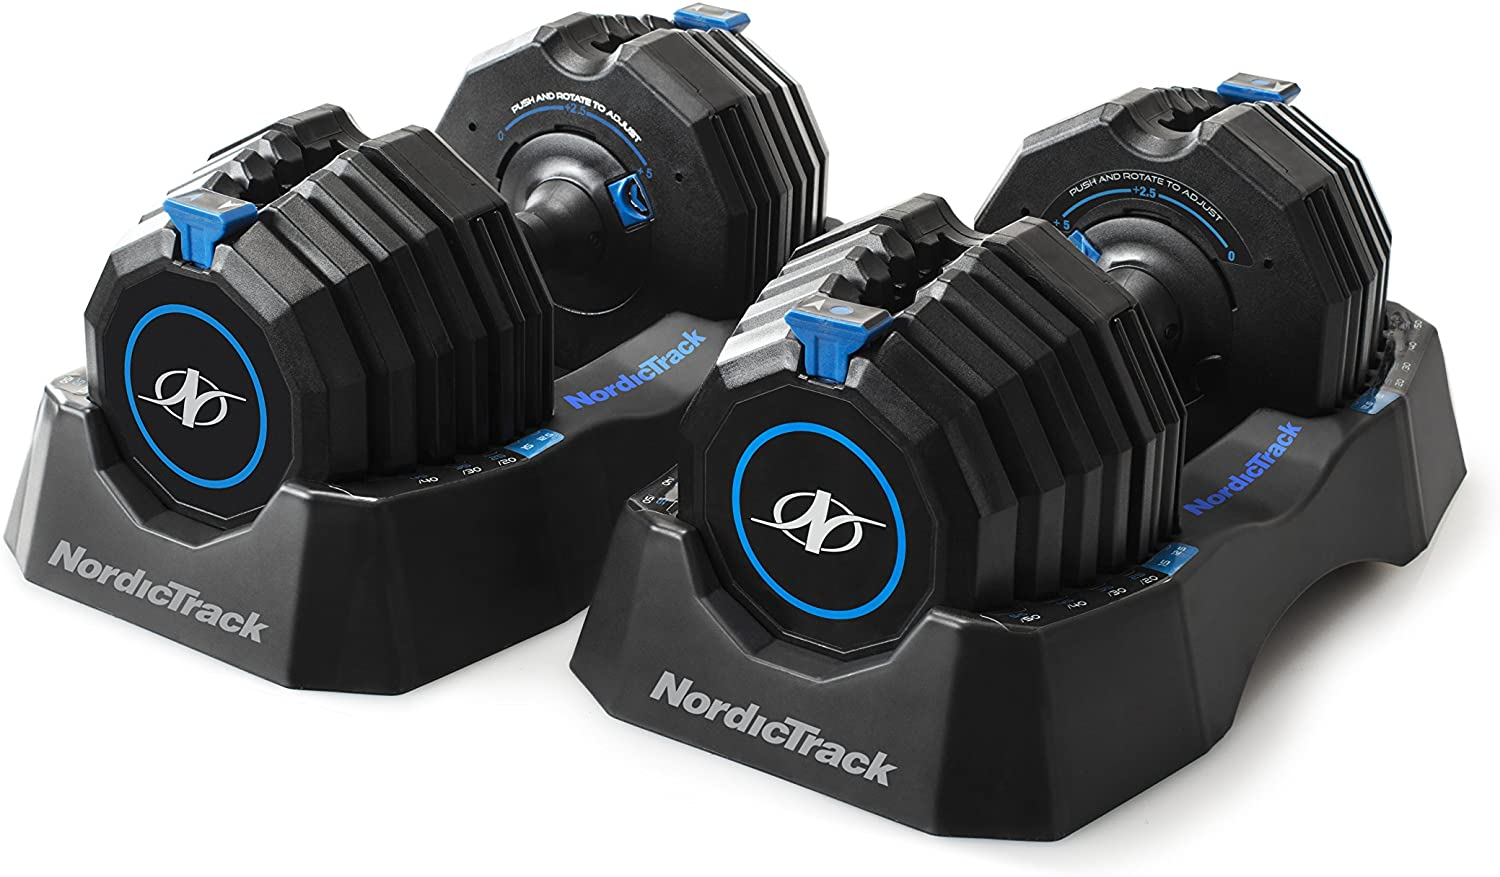 NordicTrack Select-A-Weight adjustable dumbbells